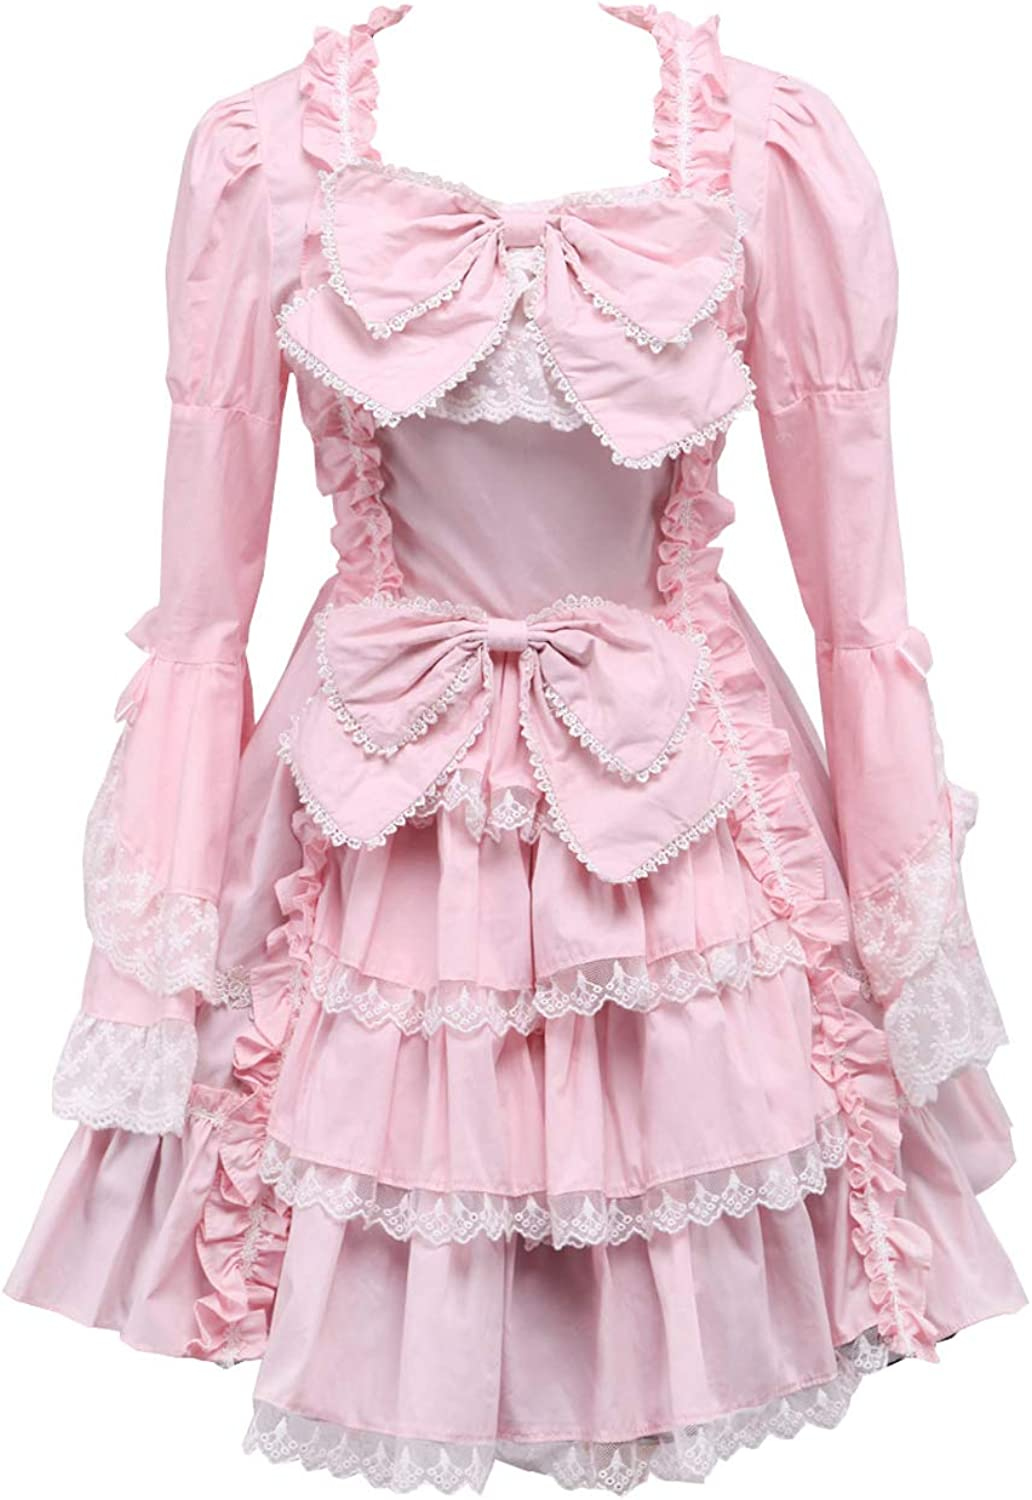 Antaina Pink Cotton Ruffle Bows Lace Luxury Victorian Lolita Cosplay Dress